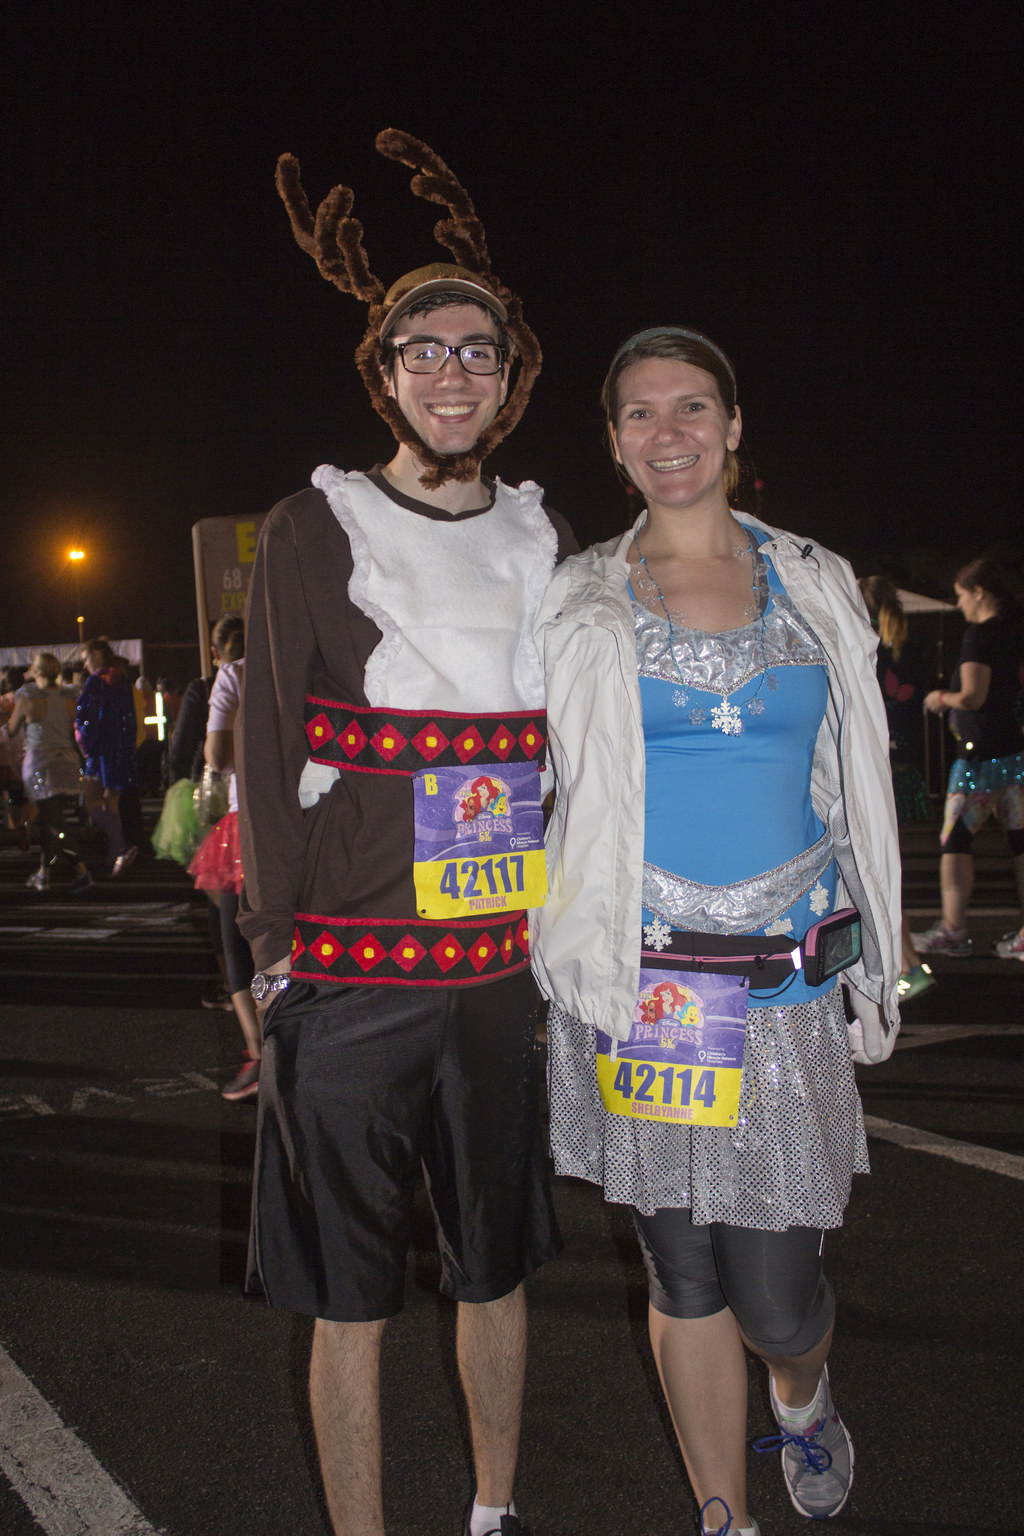 So enDEERing.  sc 1 st  BuzzFeed & I Ran Disneyu0027s Princess Half-Marathon And It Was The Best Thing Ever